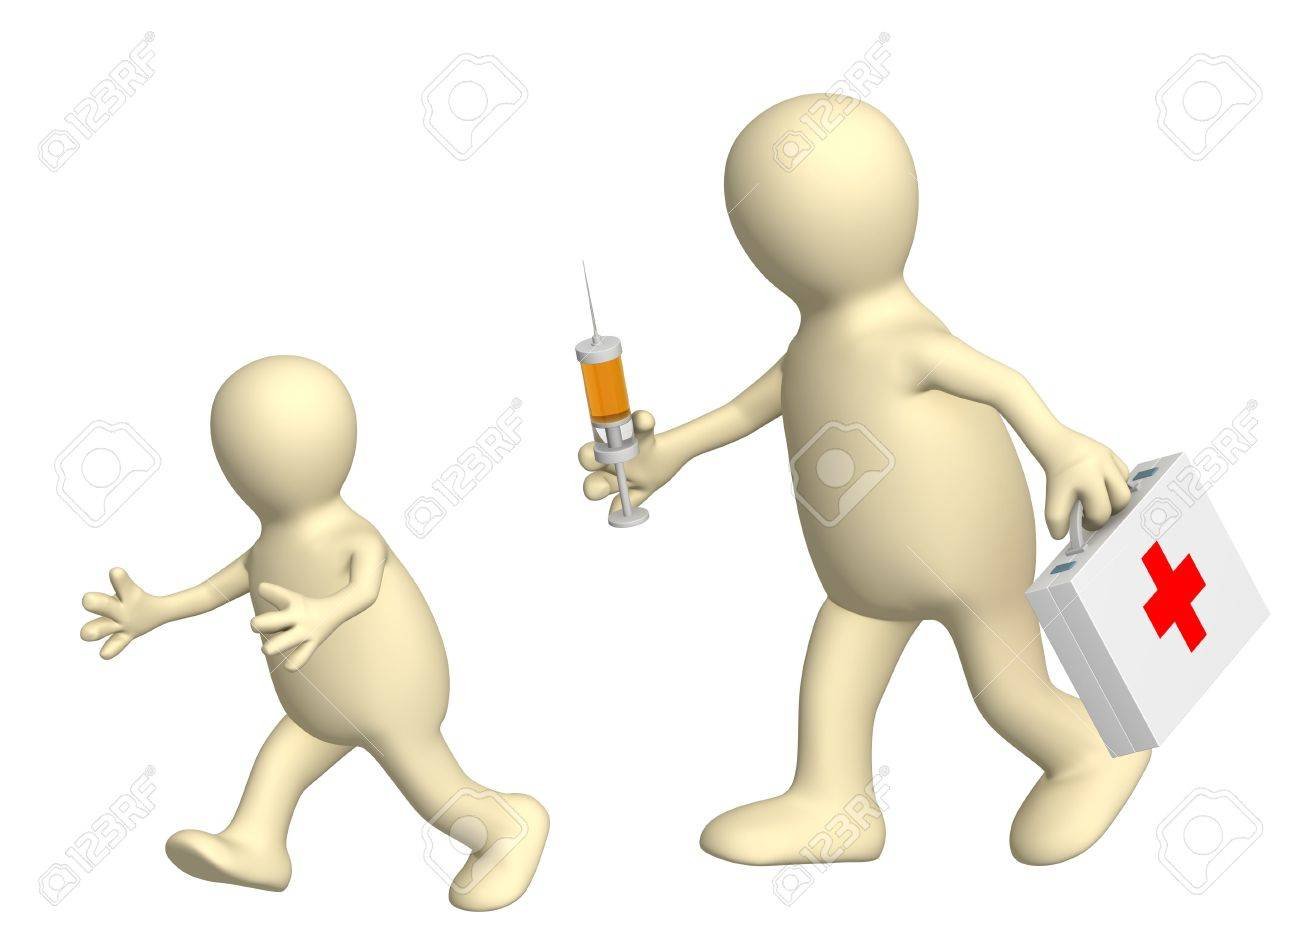 Child, escaping from the doctor with a syringe Stock Photo - 3880780